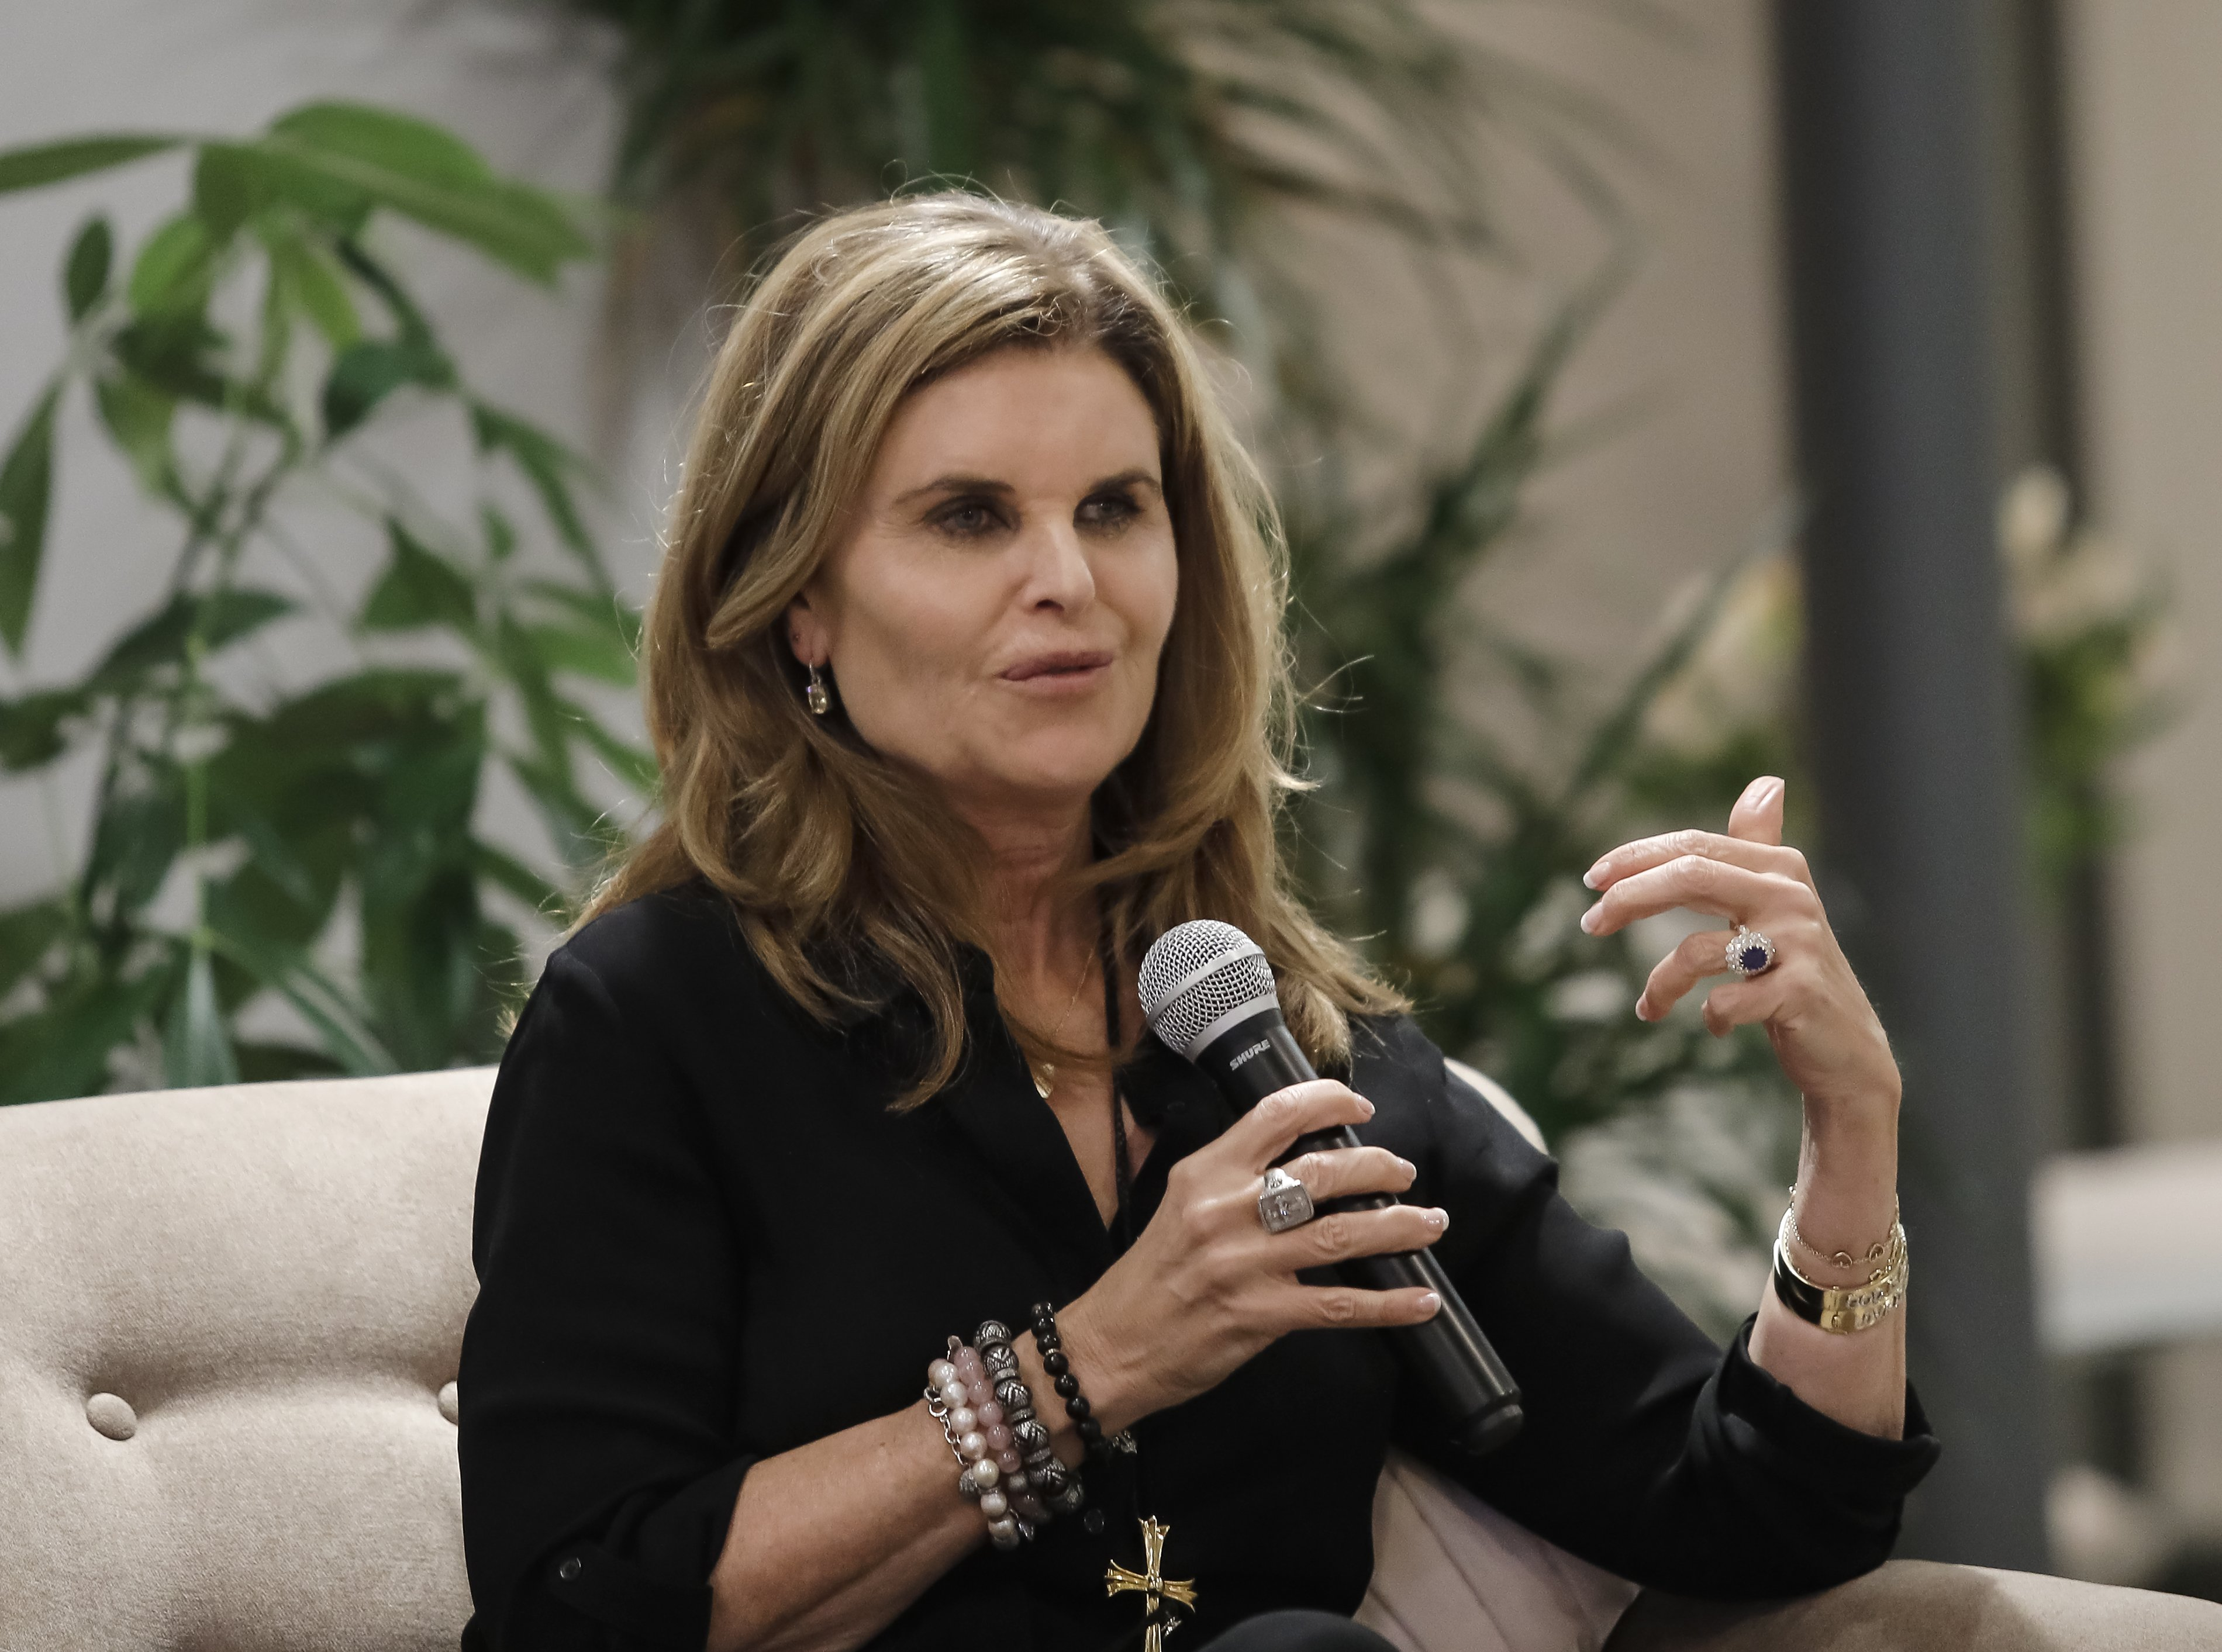 Maria Shriver speaks at the Riverter in Los Angeles, California on January 15, 2019 | Photo: Getty Images